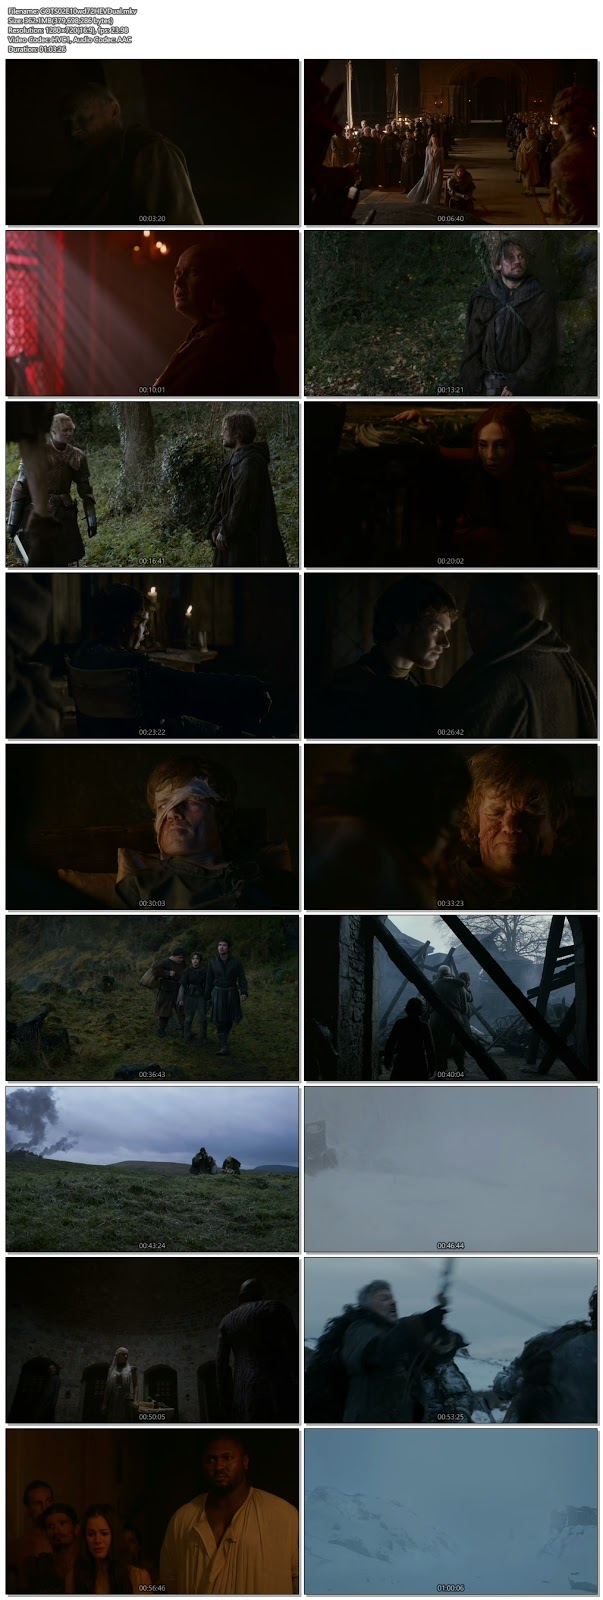 Game Of Thrones S02E10 Dual Audio 720p BRRip 300Mb x265 HEVC dual audio hindi dubbed download and watch online only at world4ufree.vip